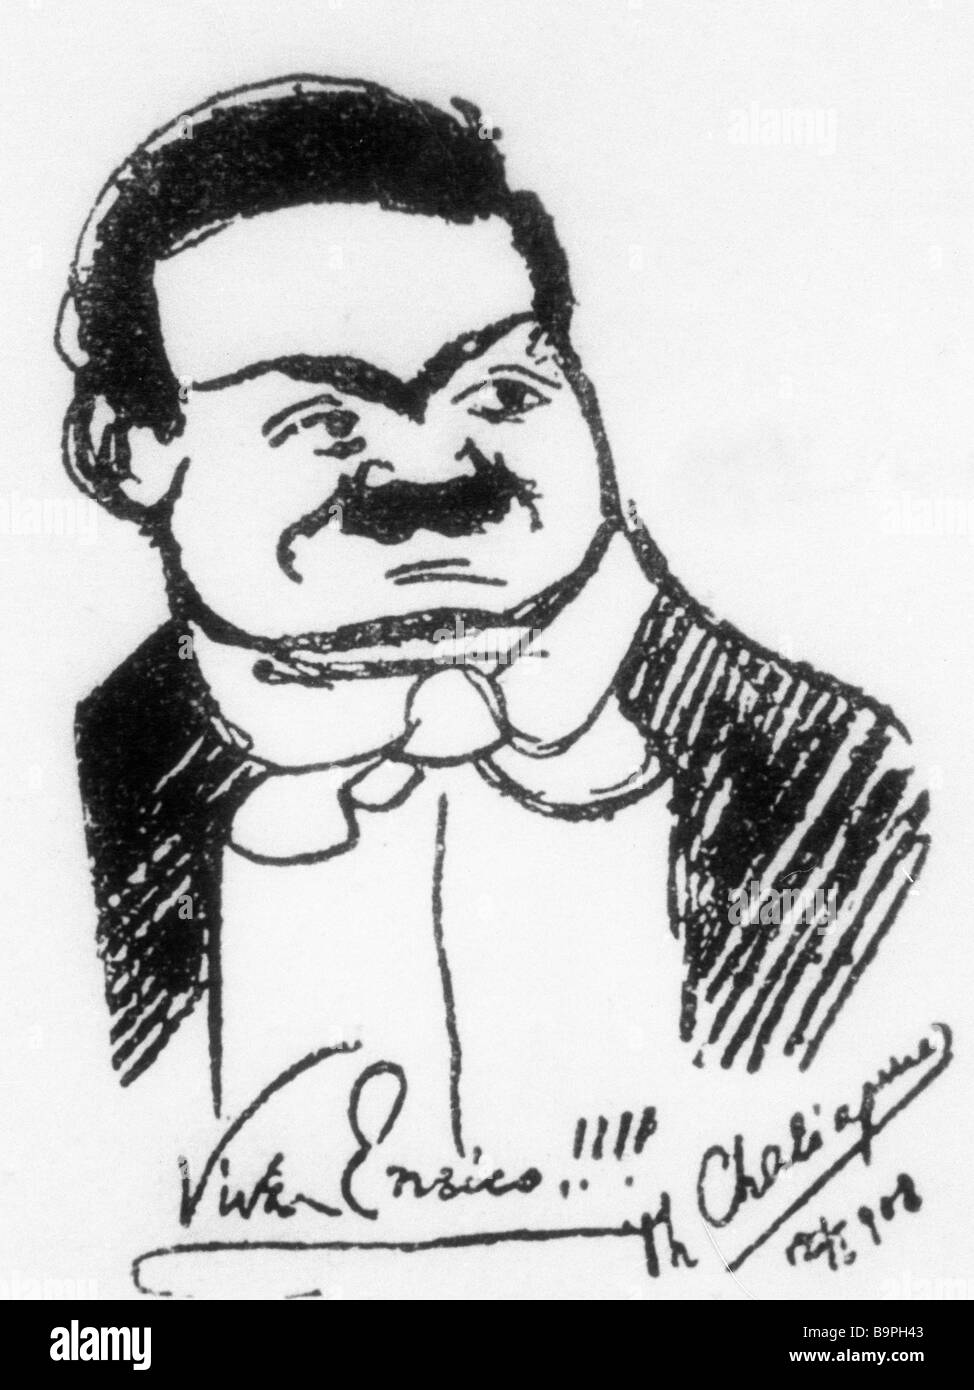 Reproduction of Feodor Chaliapin caricature - Stock Image